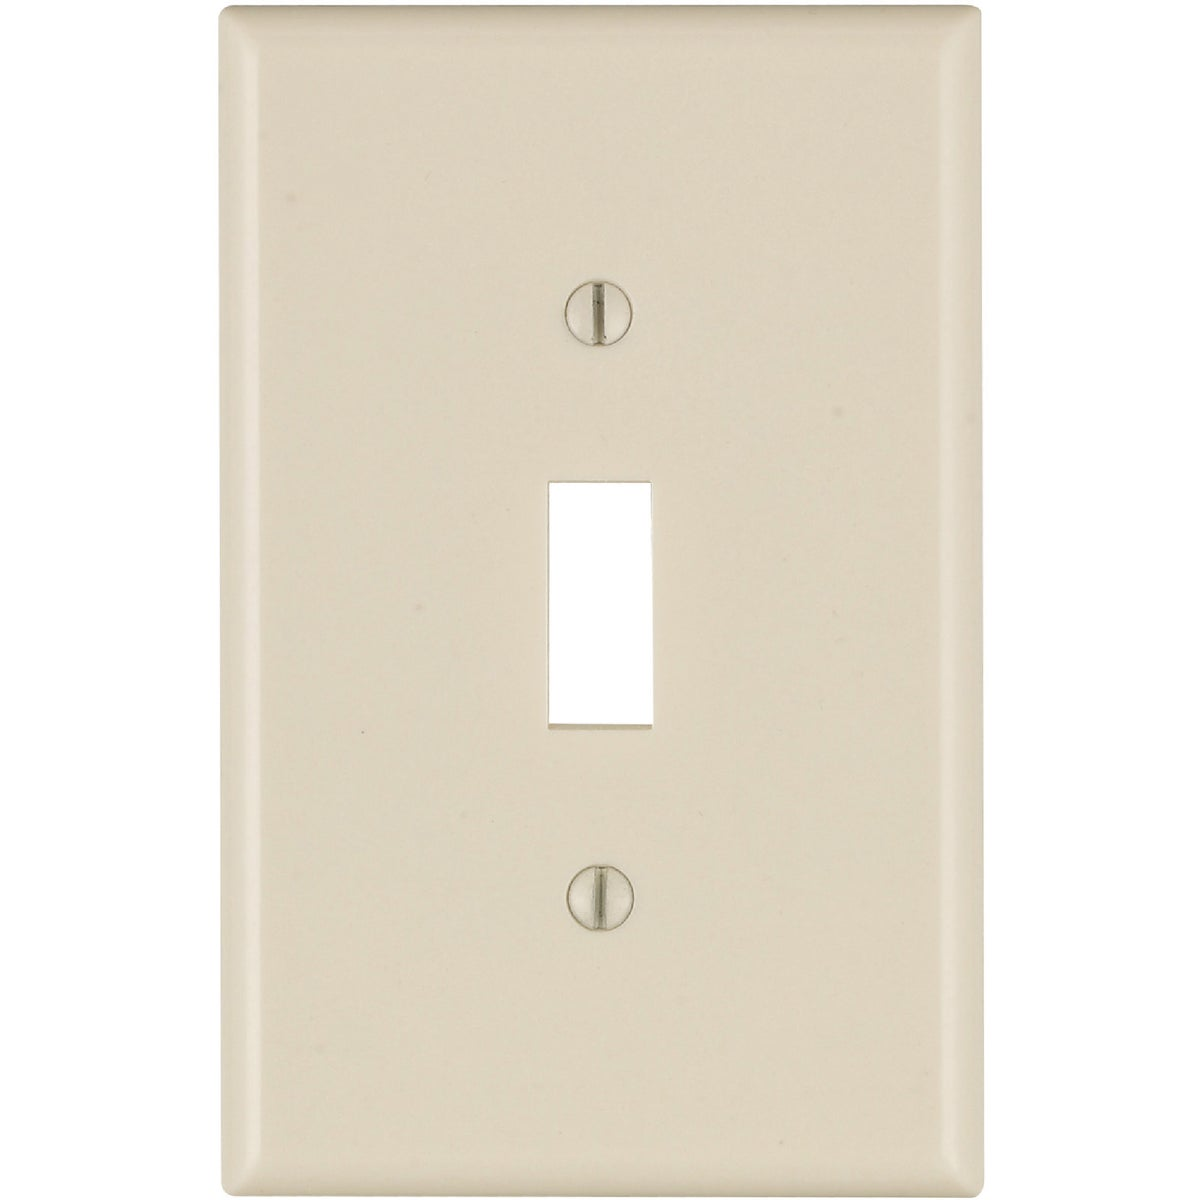 LT ALM 1-TGL WALLPLATE - 025-80501-00T by Leviton Mfg Co